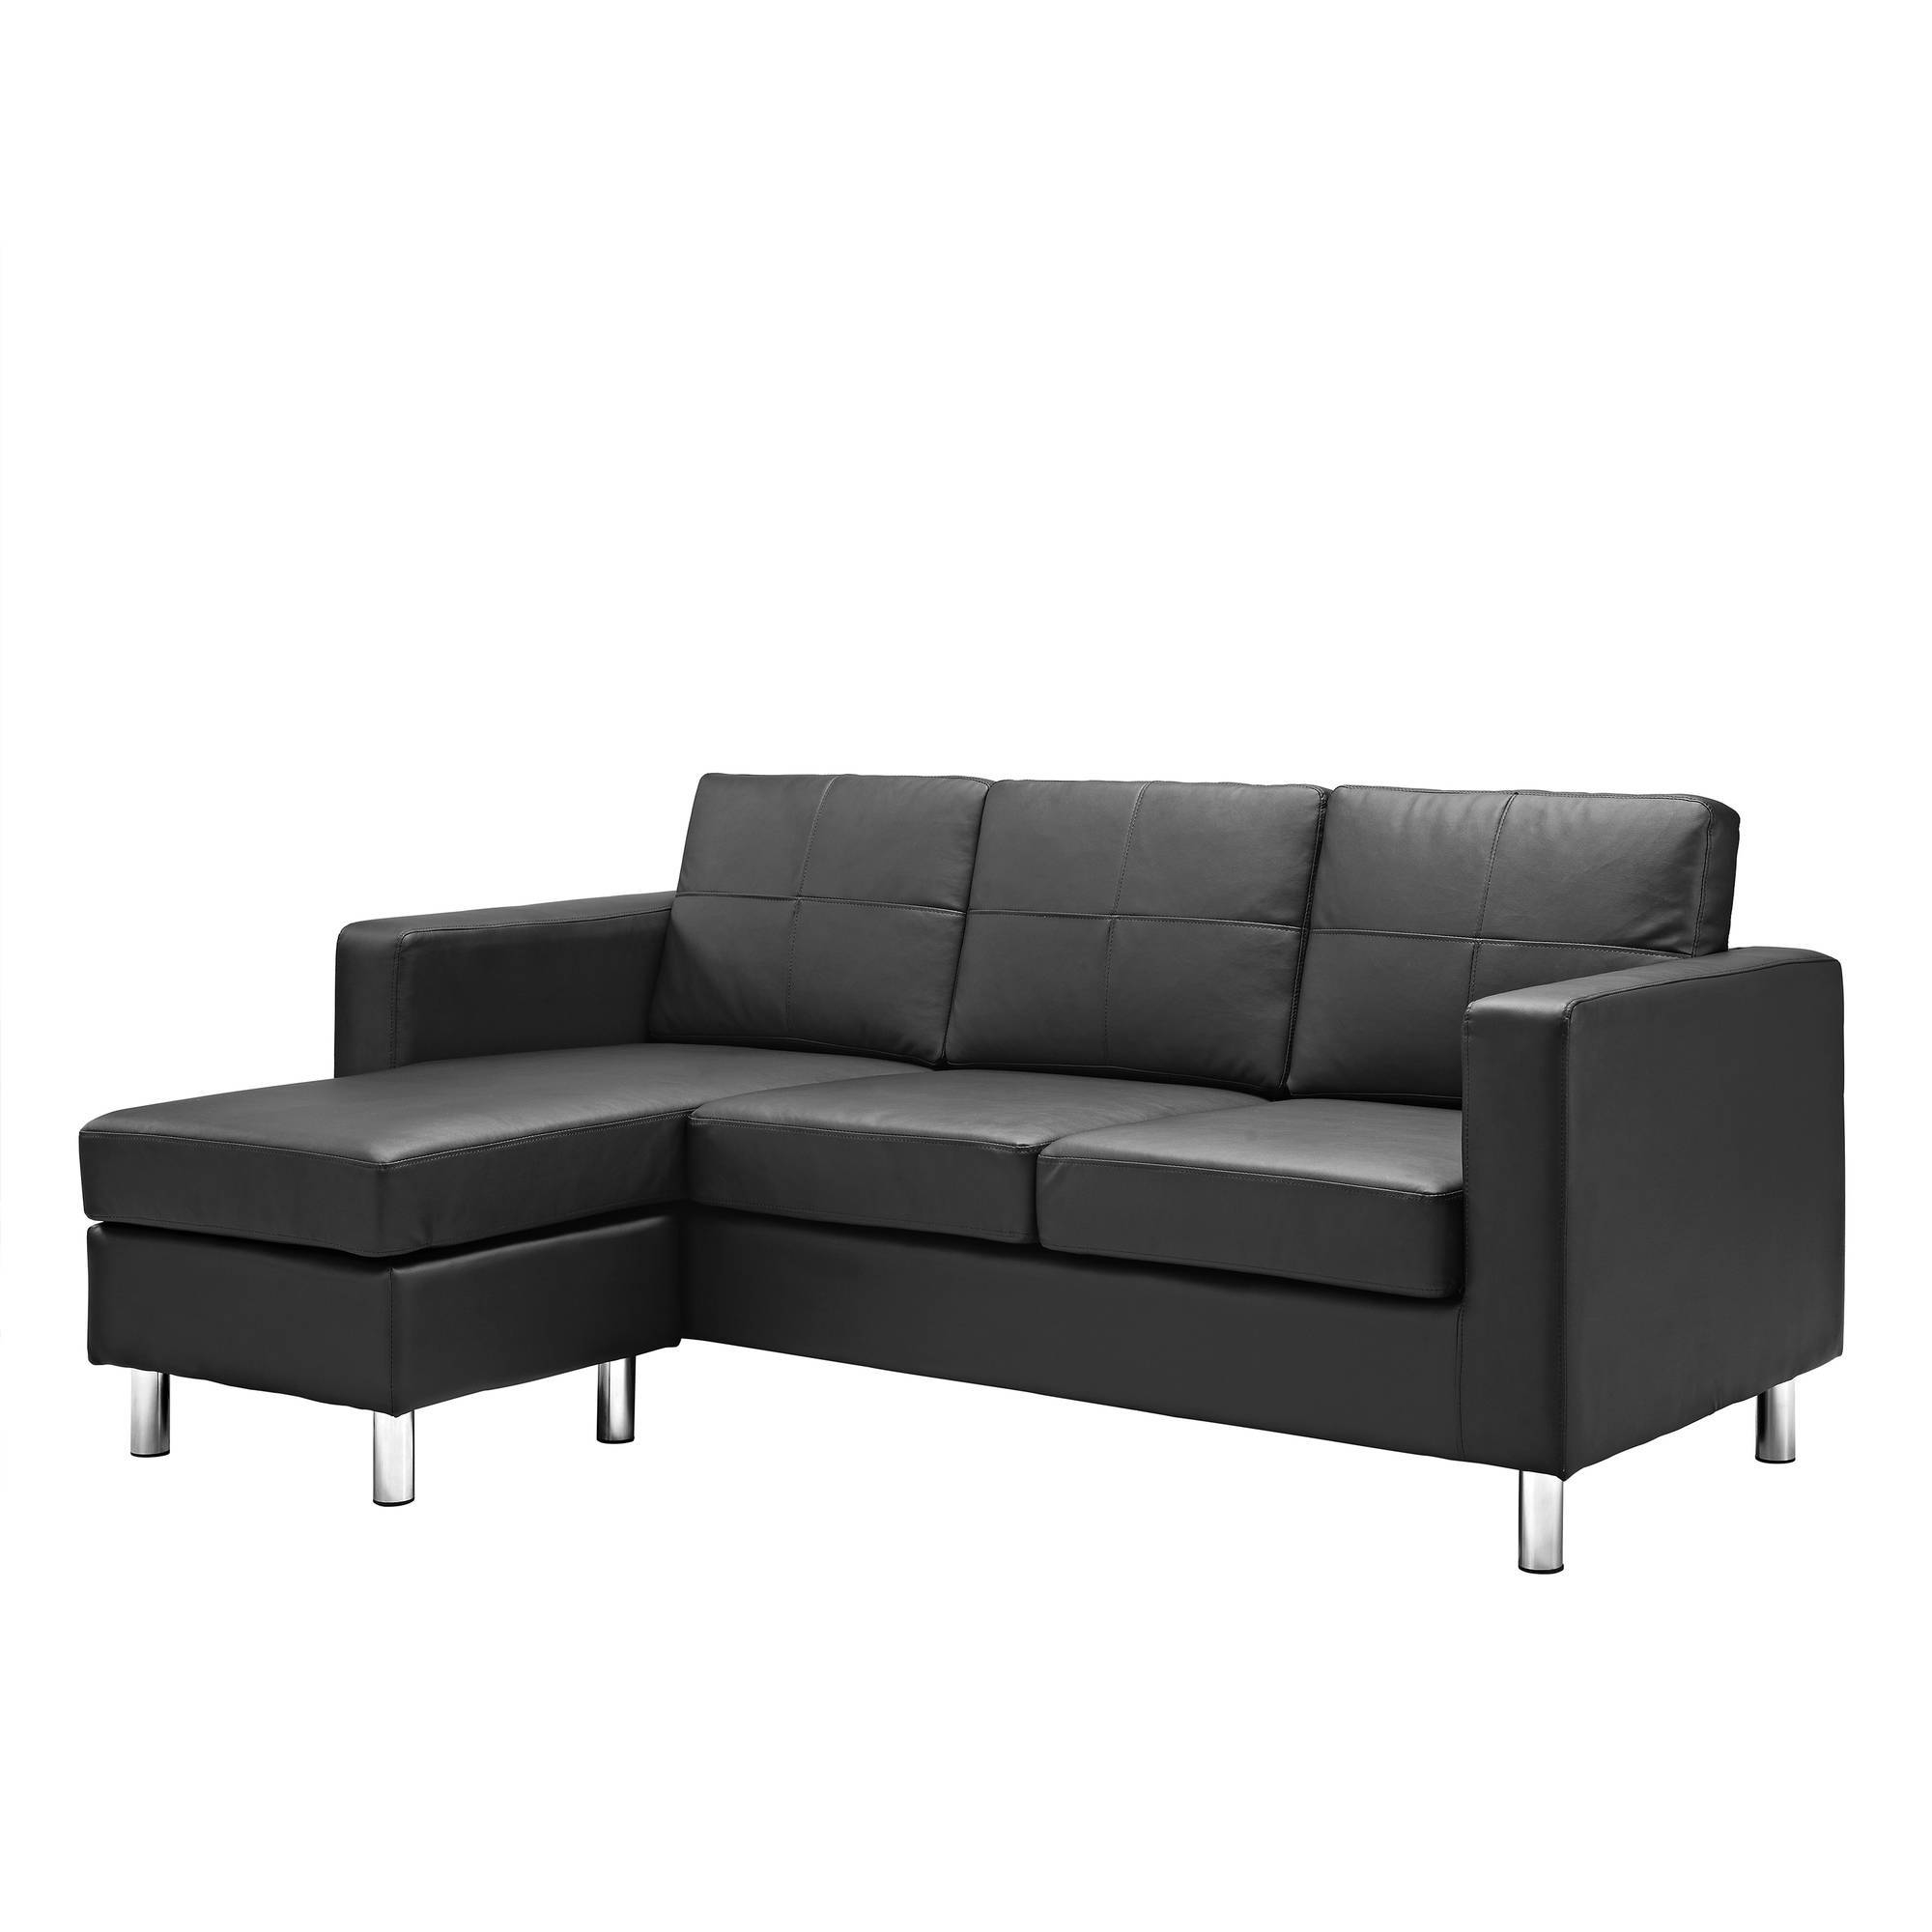 Best Of Apartment Size Sofas And Sectionals